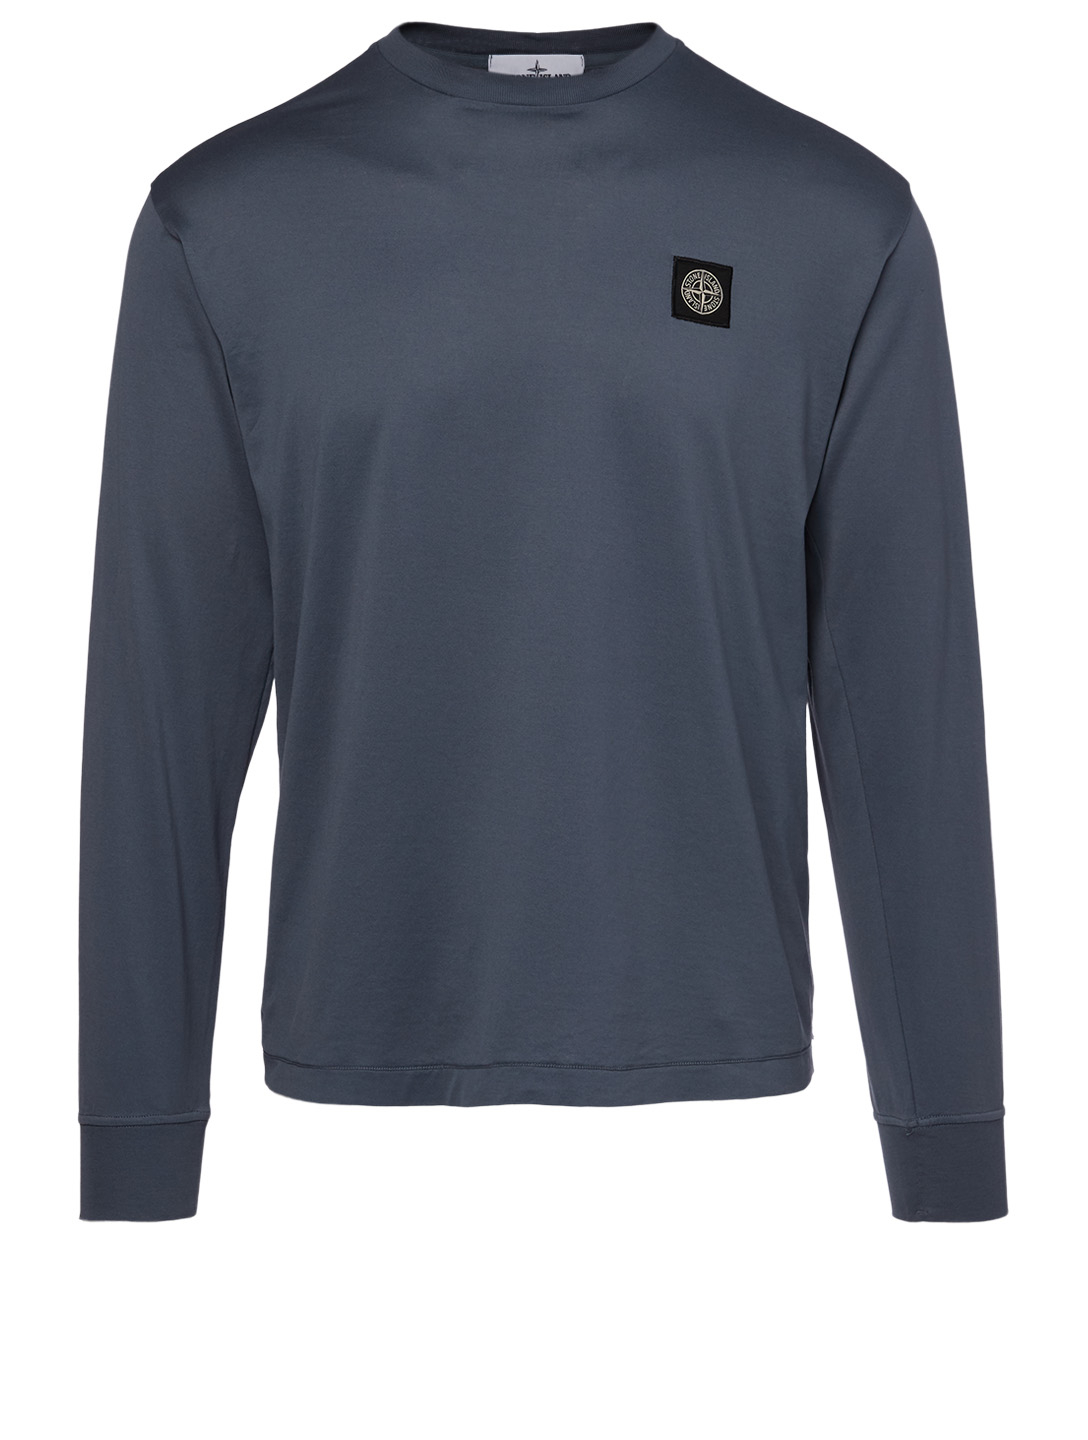 STONE ISLAND Cotton Long-Sleeve T-Shirt Men's Blue